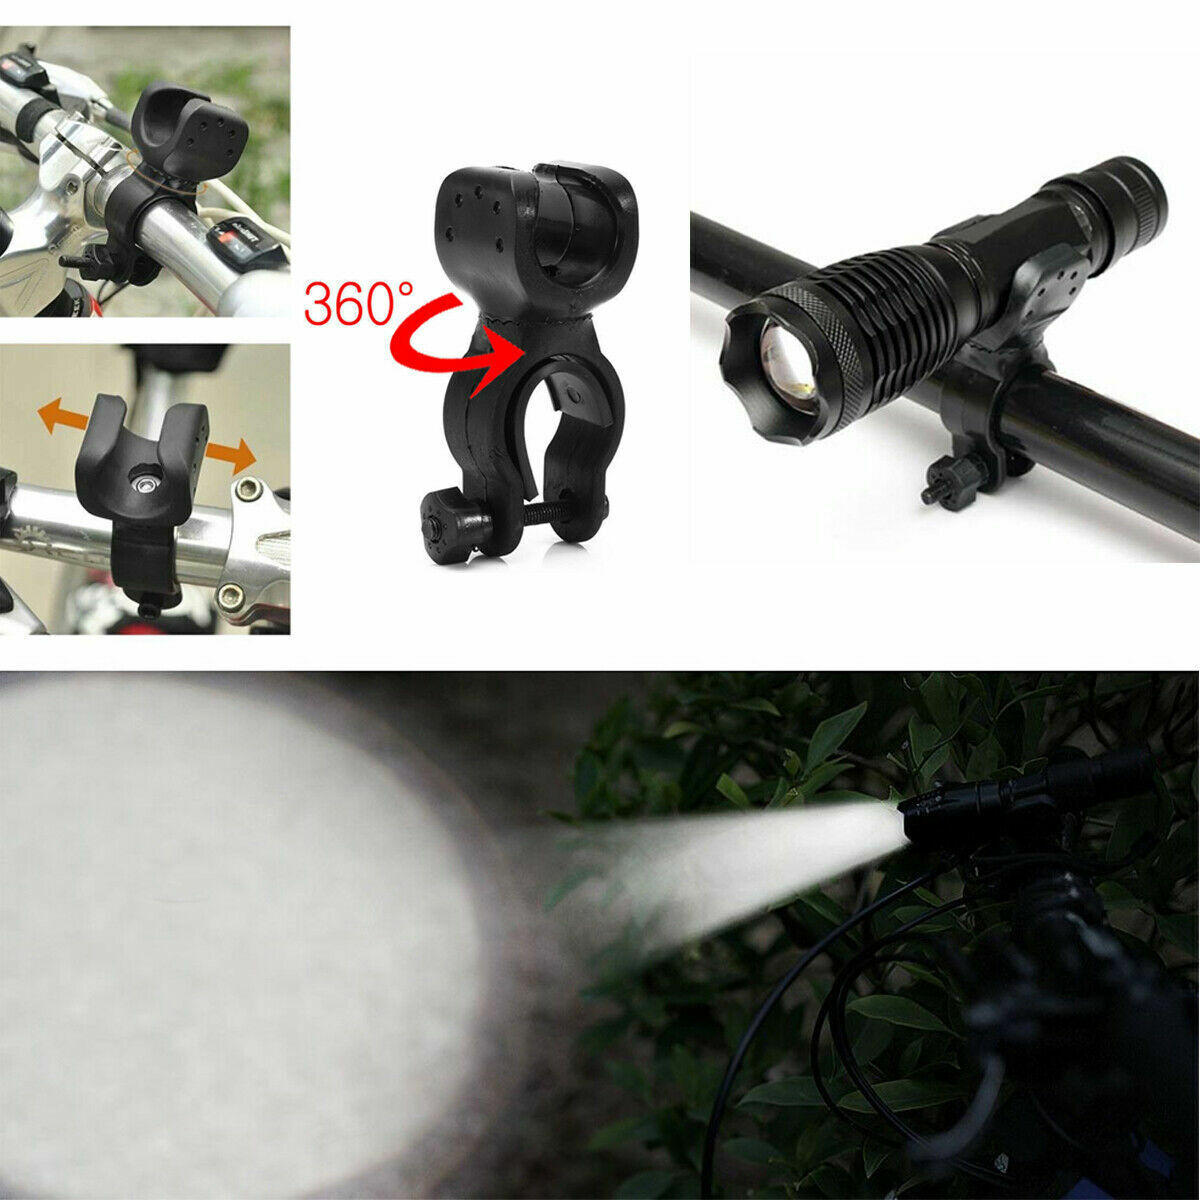 2 PACK 20000lm USB Rechargeable CREE T6 LED Tactical Flashlight Torch Eaglehawk Camping & Hiking